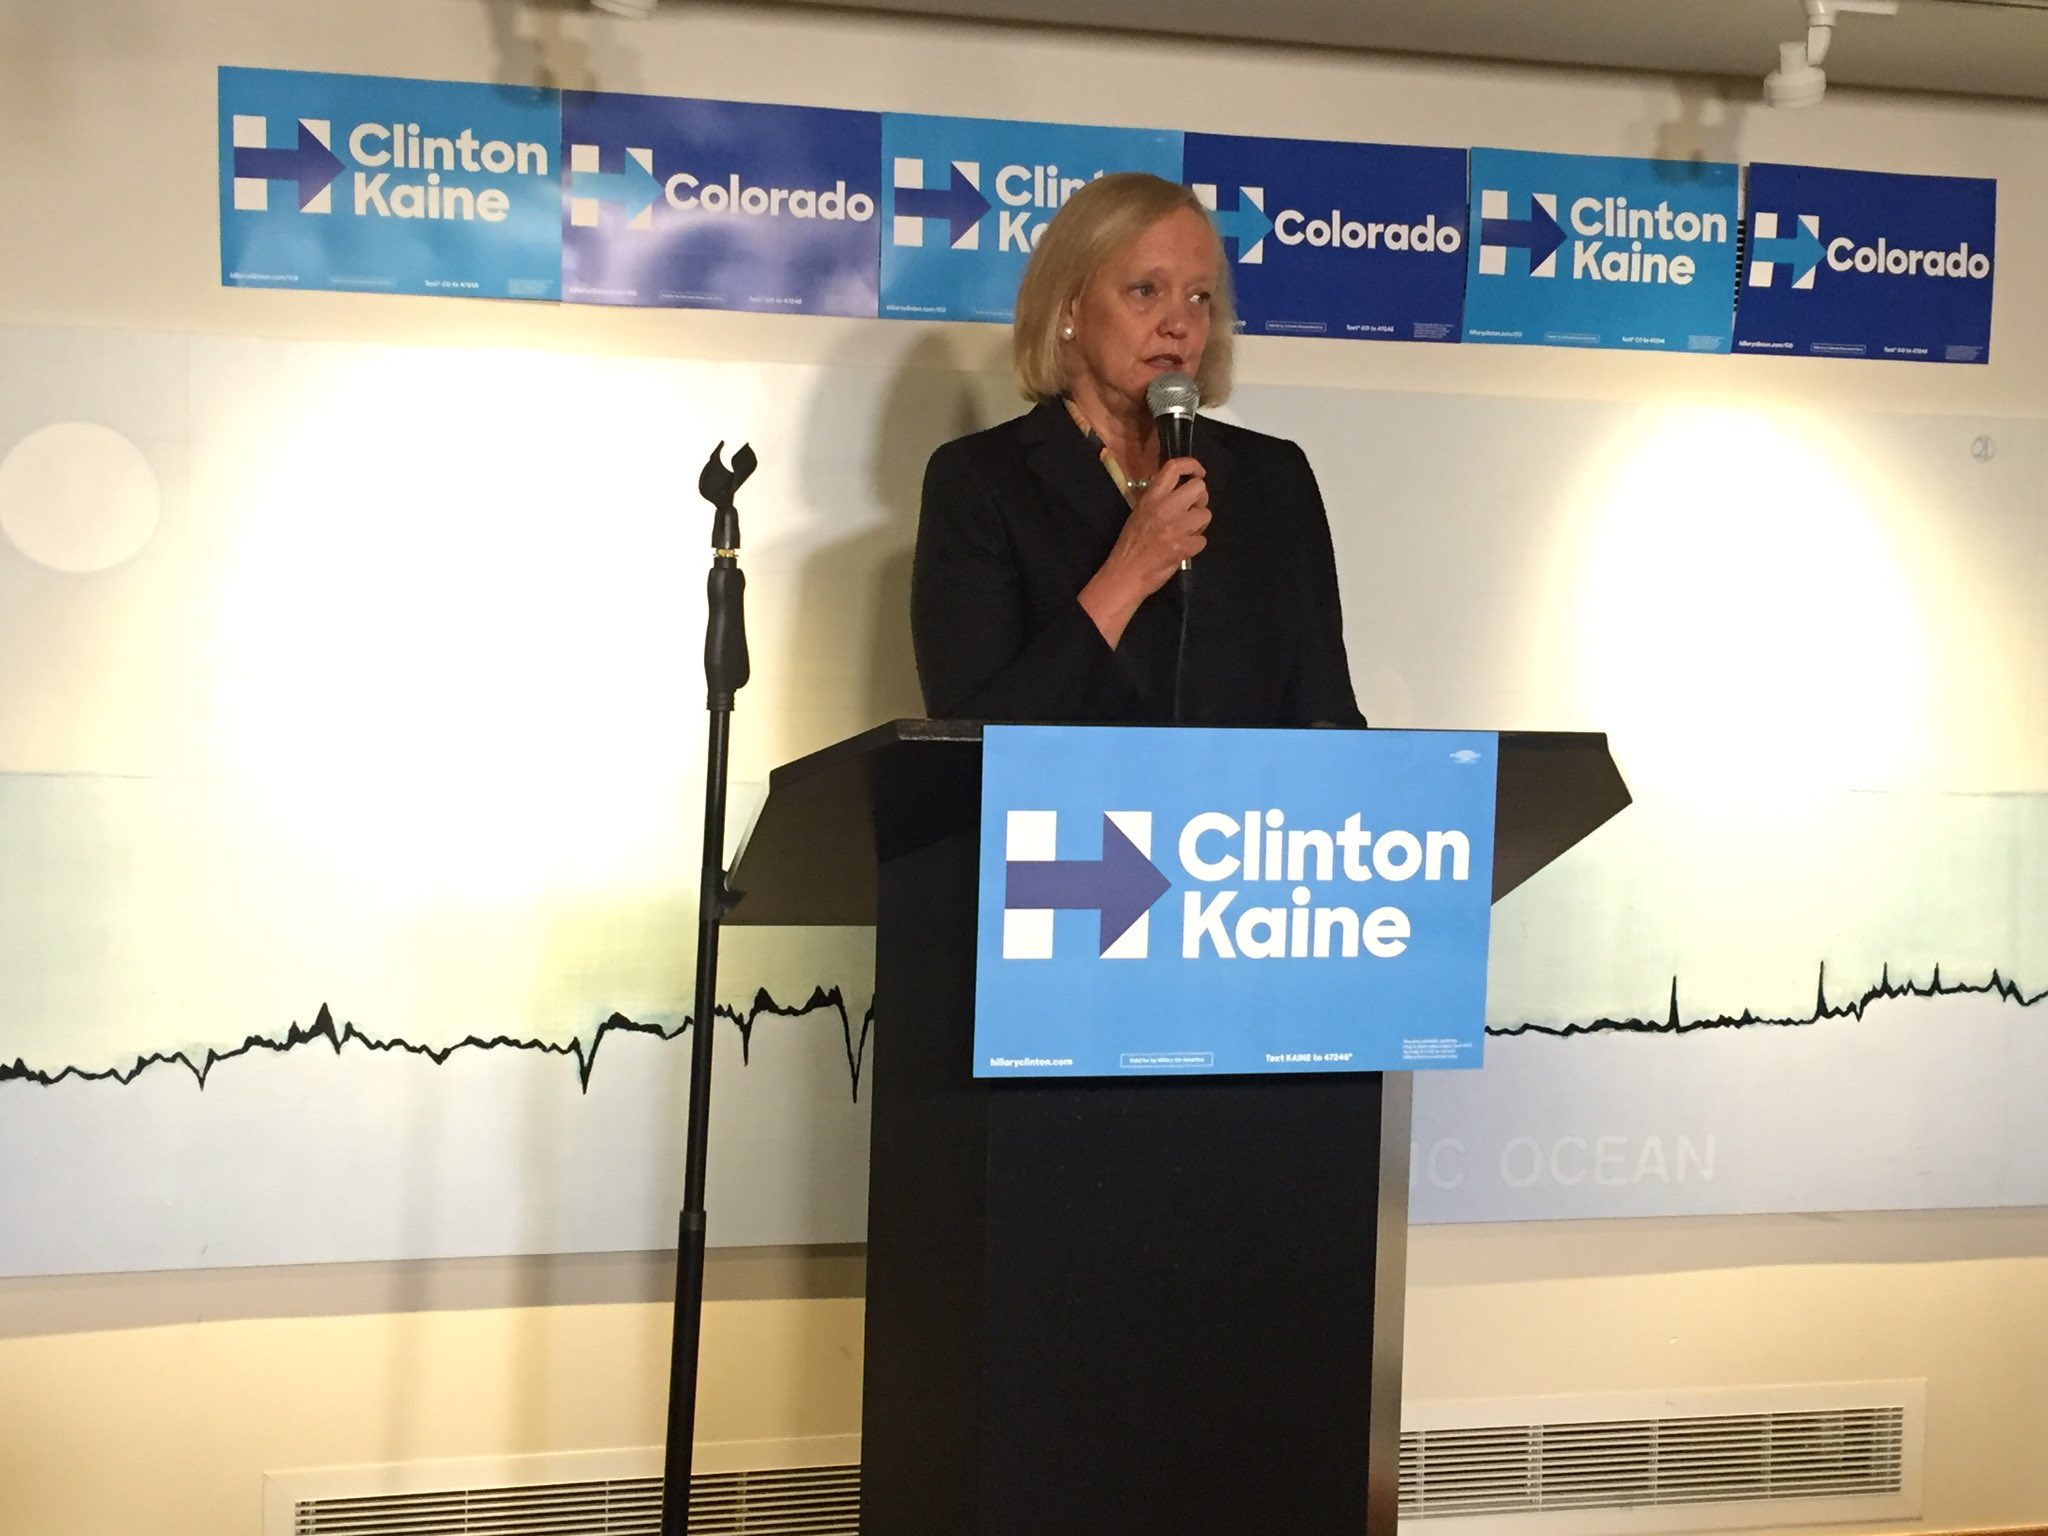 """Lifelong Republican"" Meg Whitman speaking in the basement at Union Station yesterday."